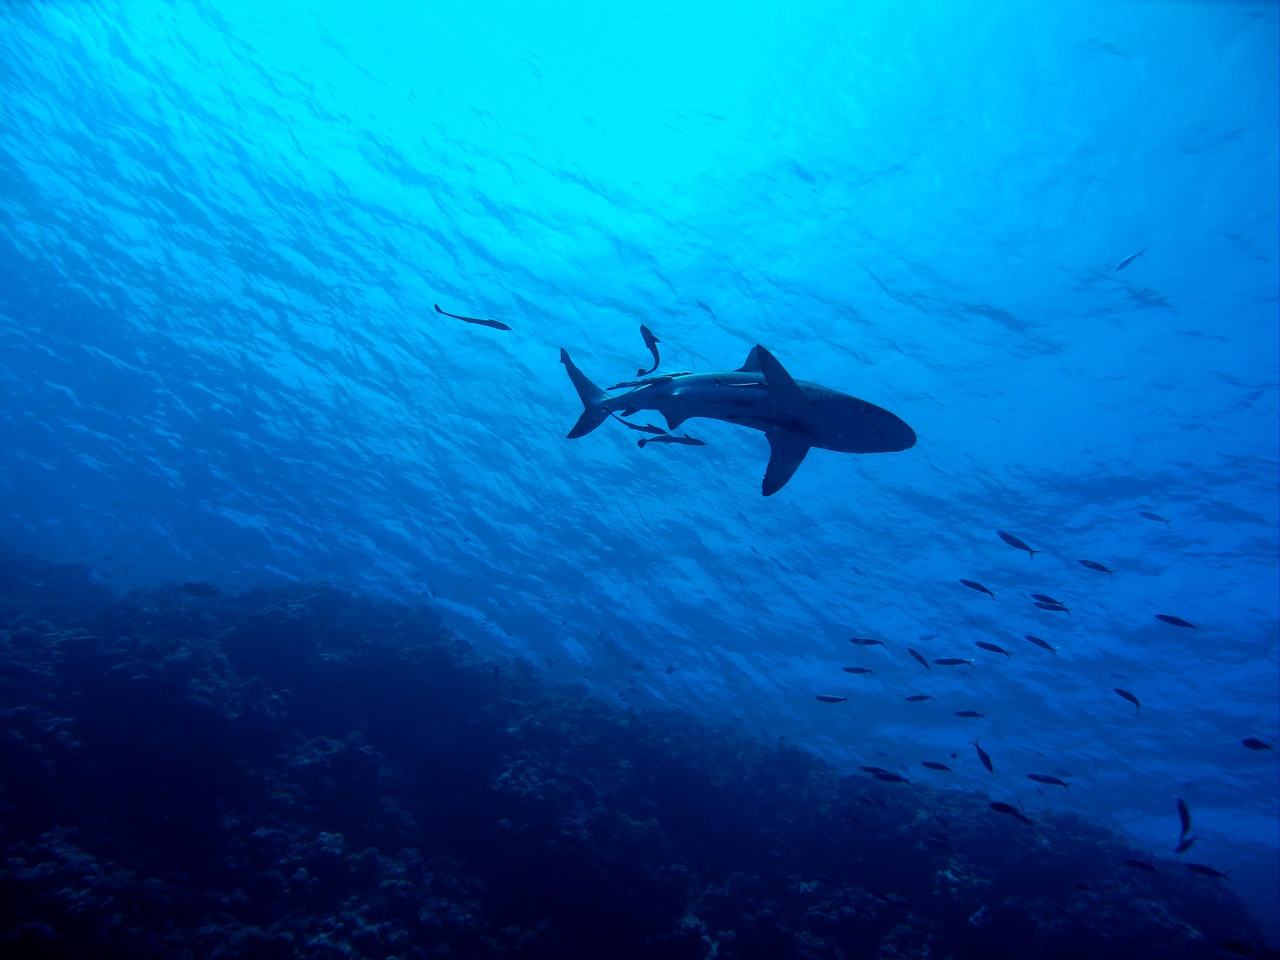 Researchers noticed fewer sharks in the Chagos archipelago than they originally expected.